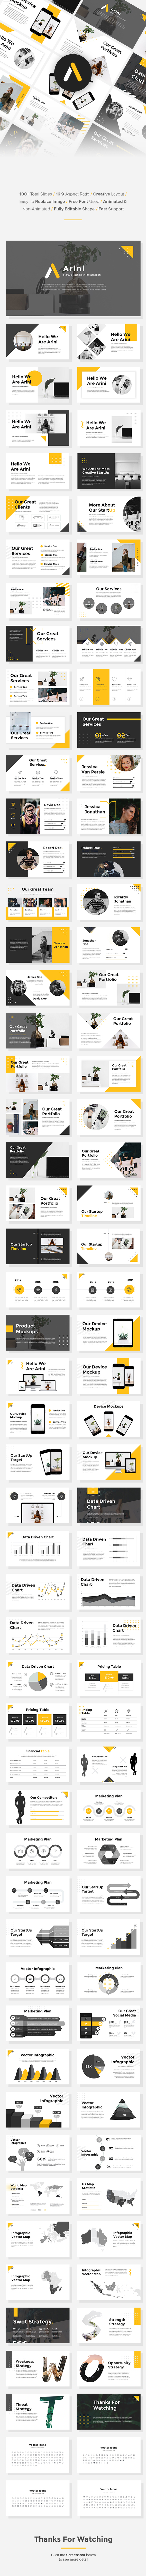 Arini - StartUp Pitch Deck PowerPoint Template - Pitch Deck PowerPoint Templates